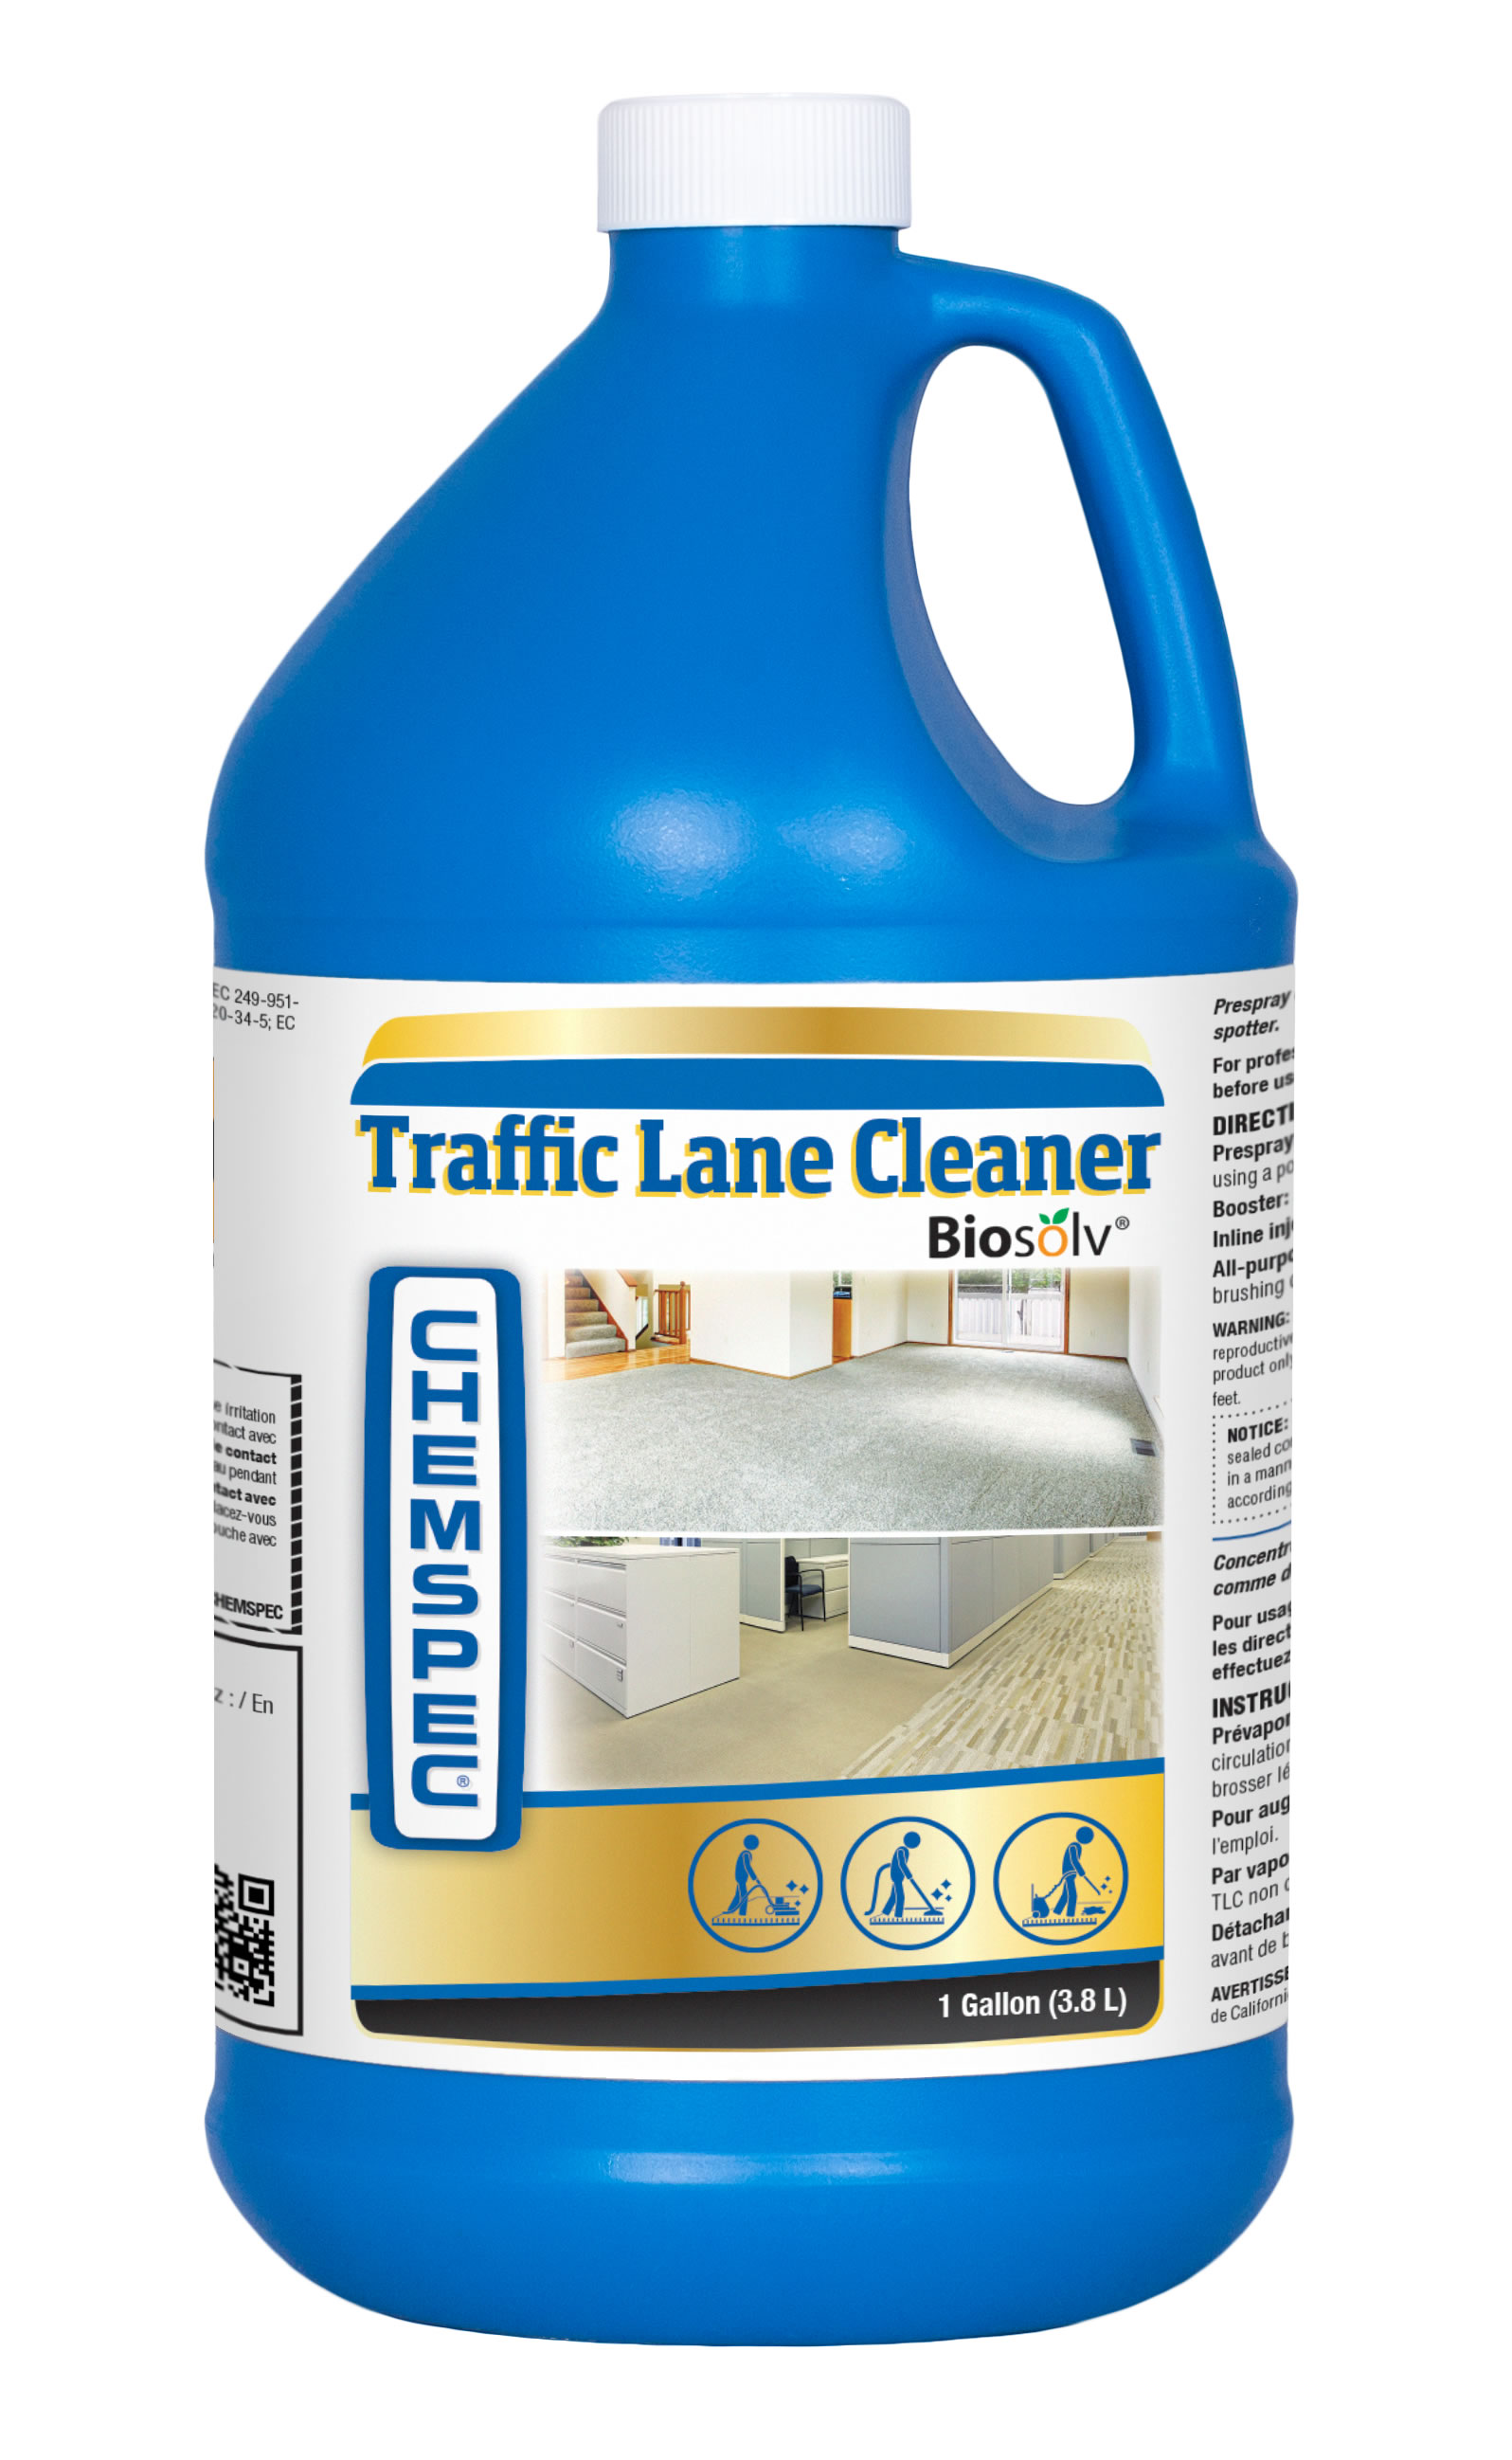 Traffic Lane Cleaner W/BioSolv ph 11-12.